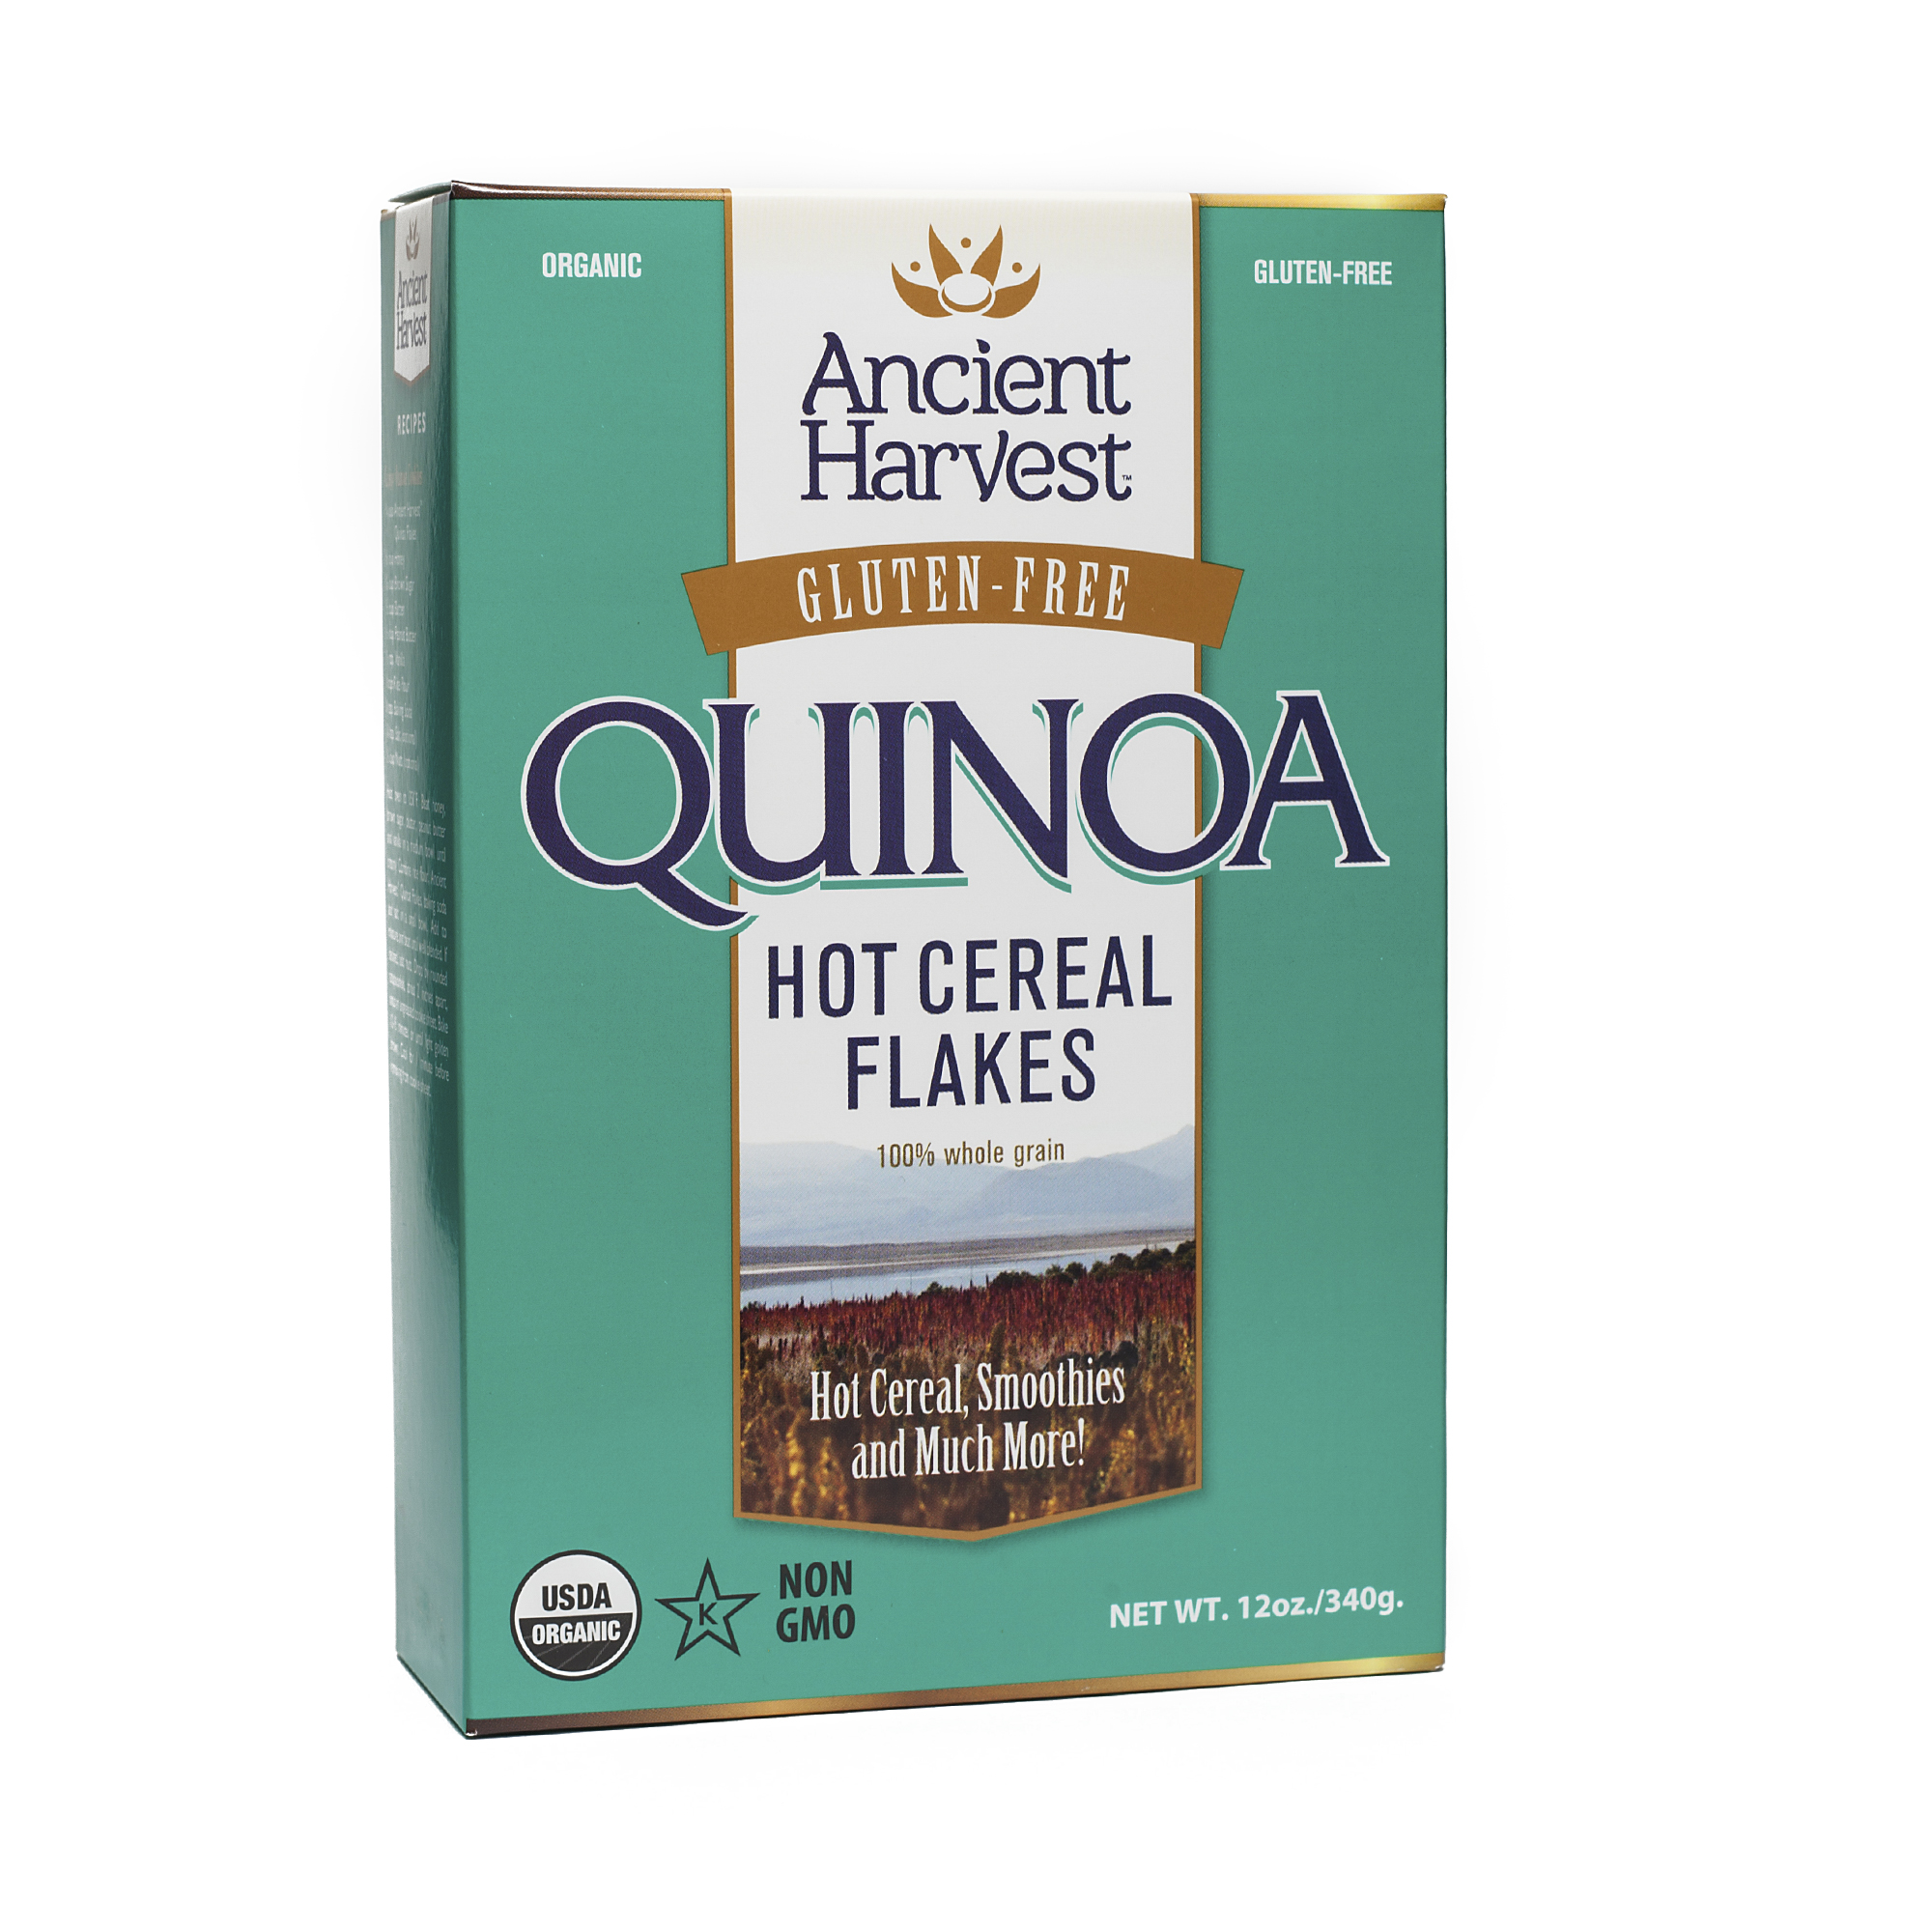 Ancient Harvest 100% Whole Grain Quinoa Hot Cereal Flakes